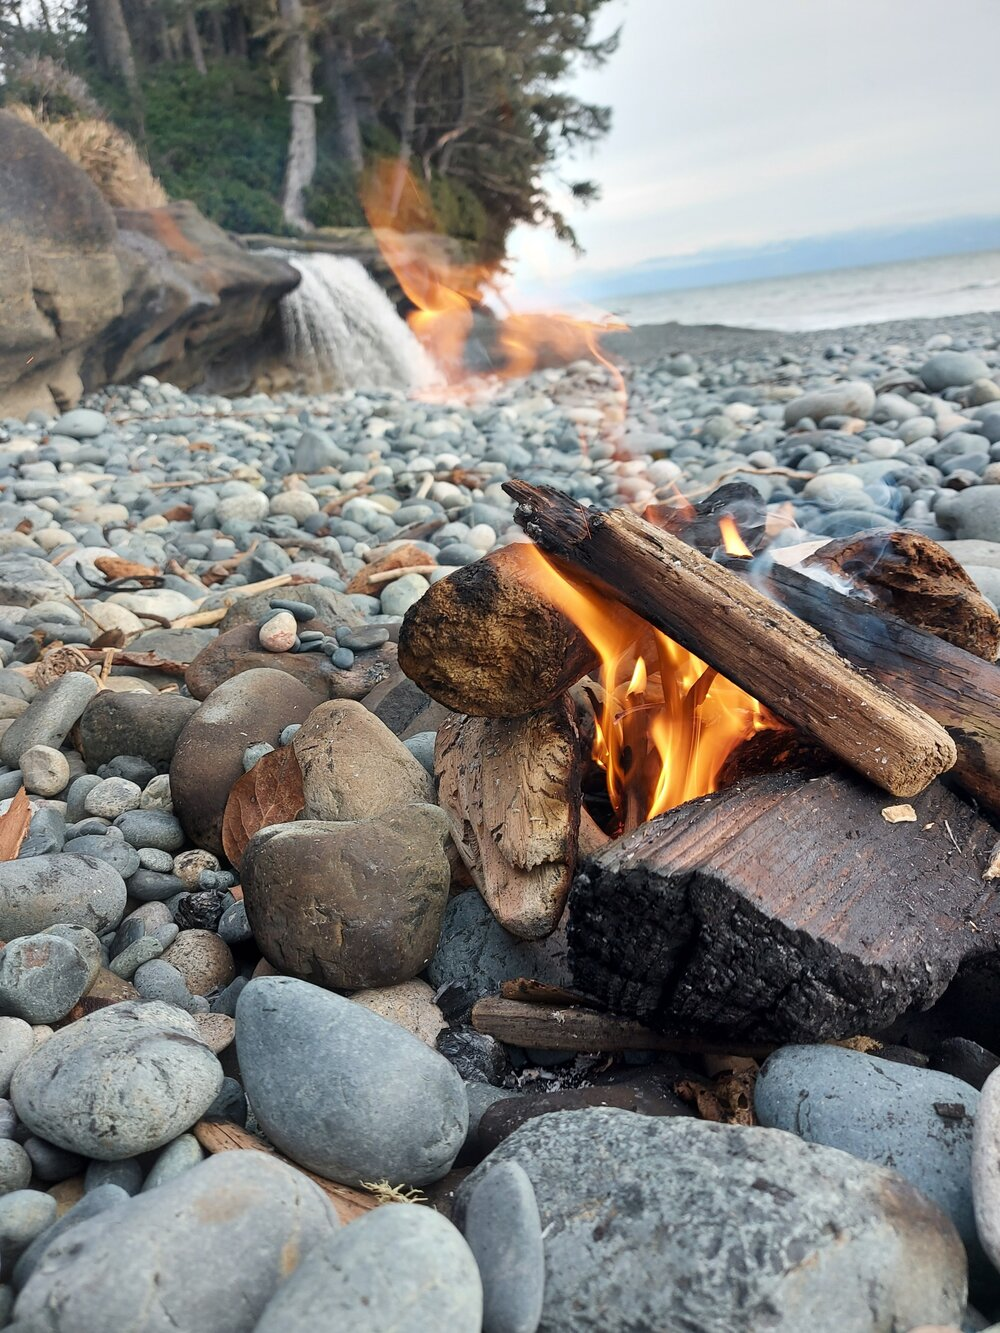 Starter in use! Helping us light a fire with damp wood on the beach.